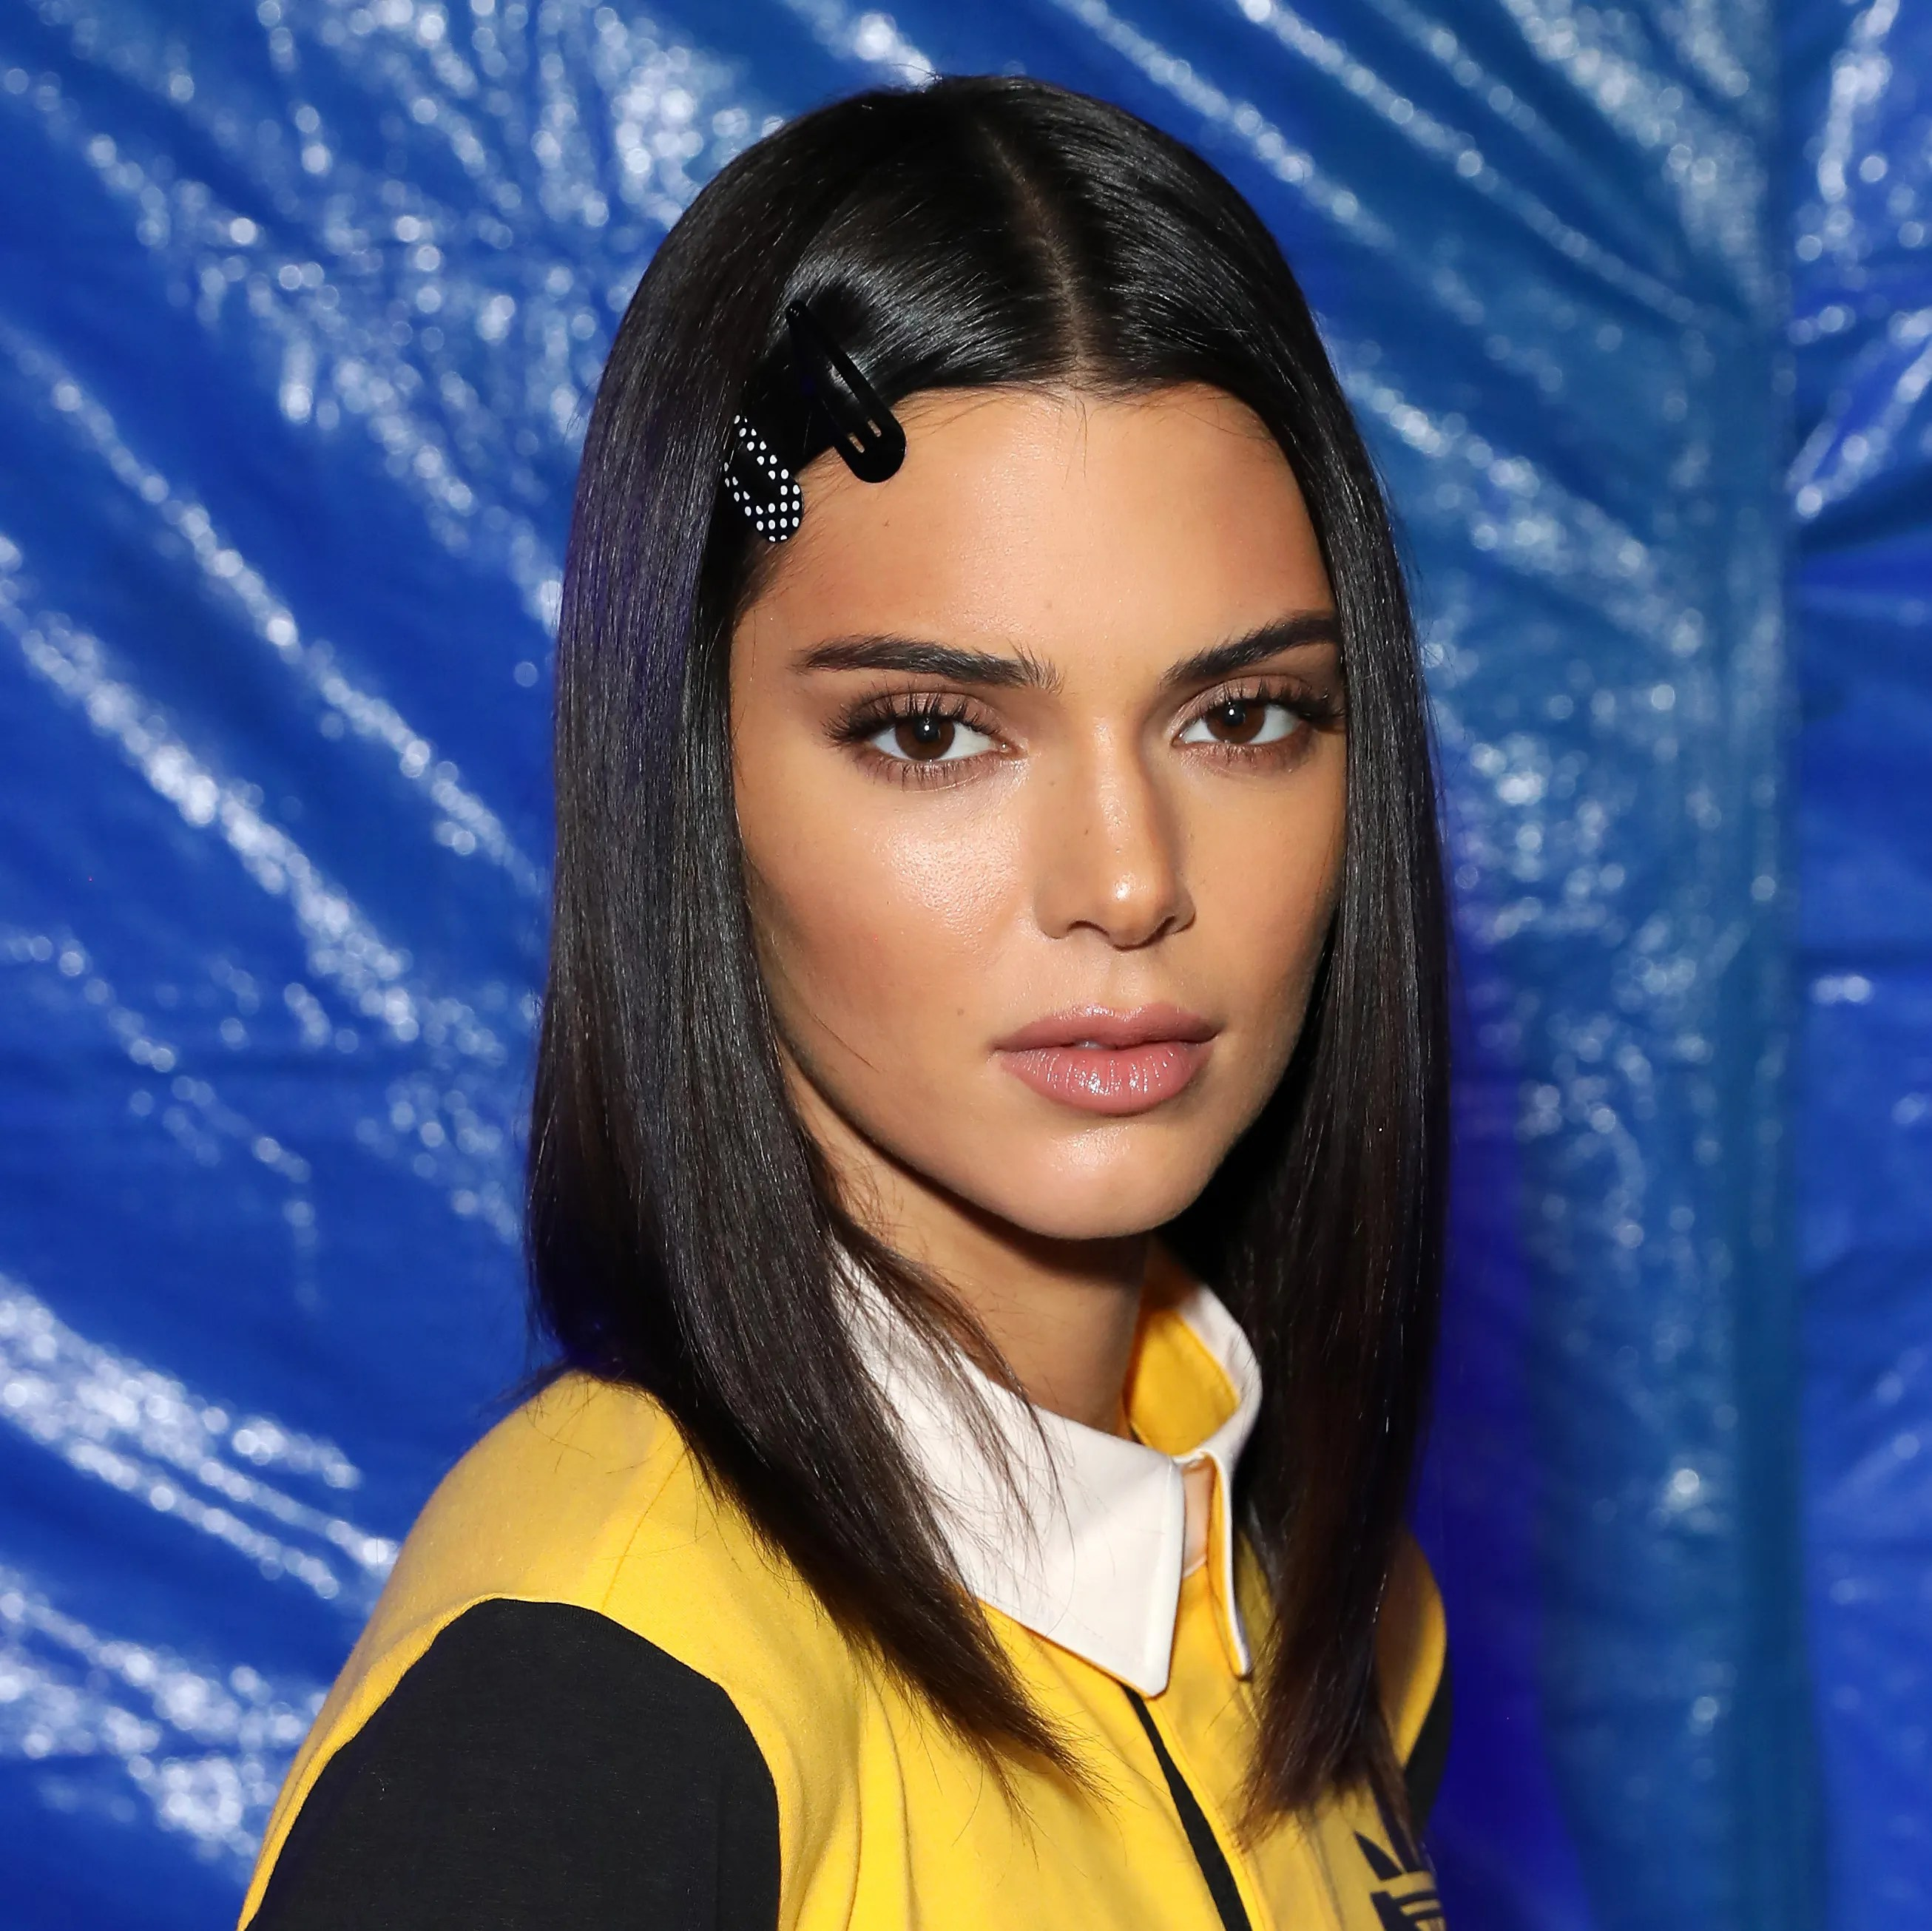 33 Quick Easy Hairstyles To Try In 2019 Allure